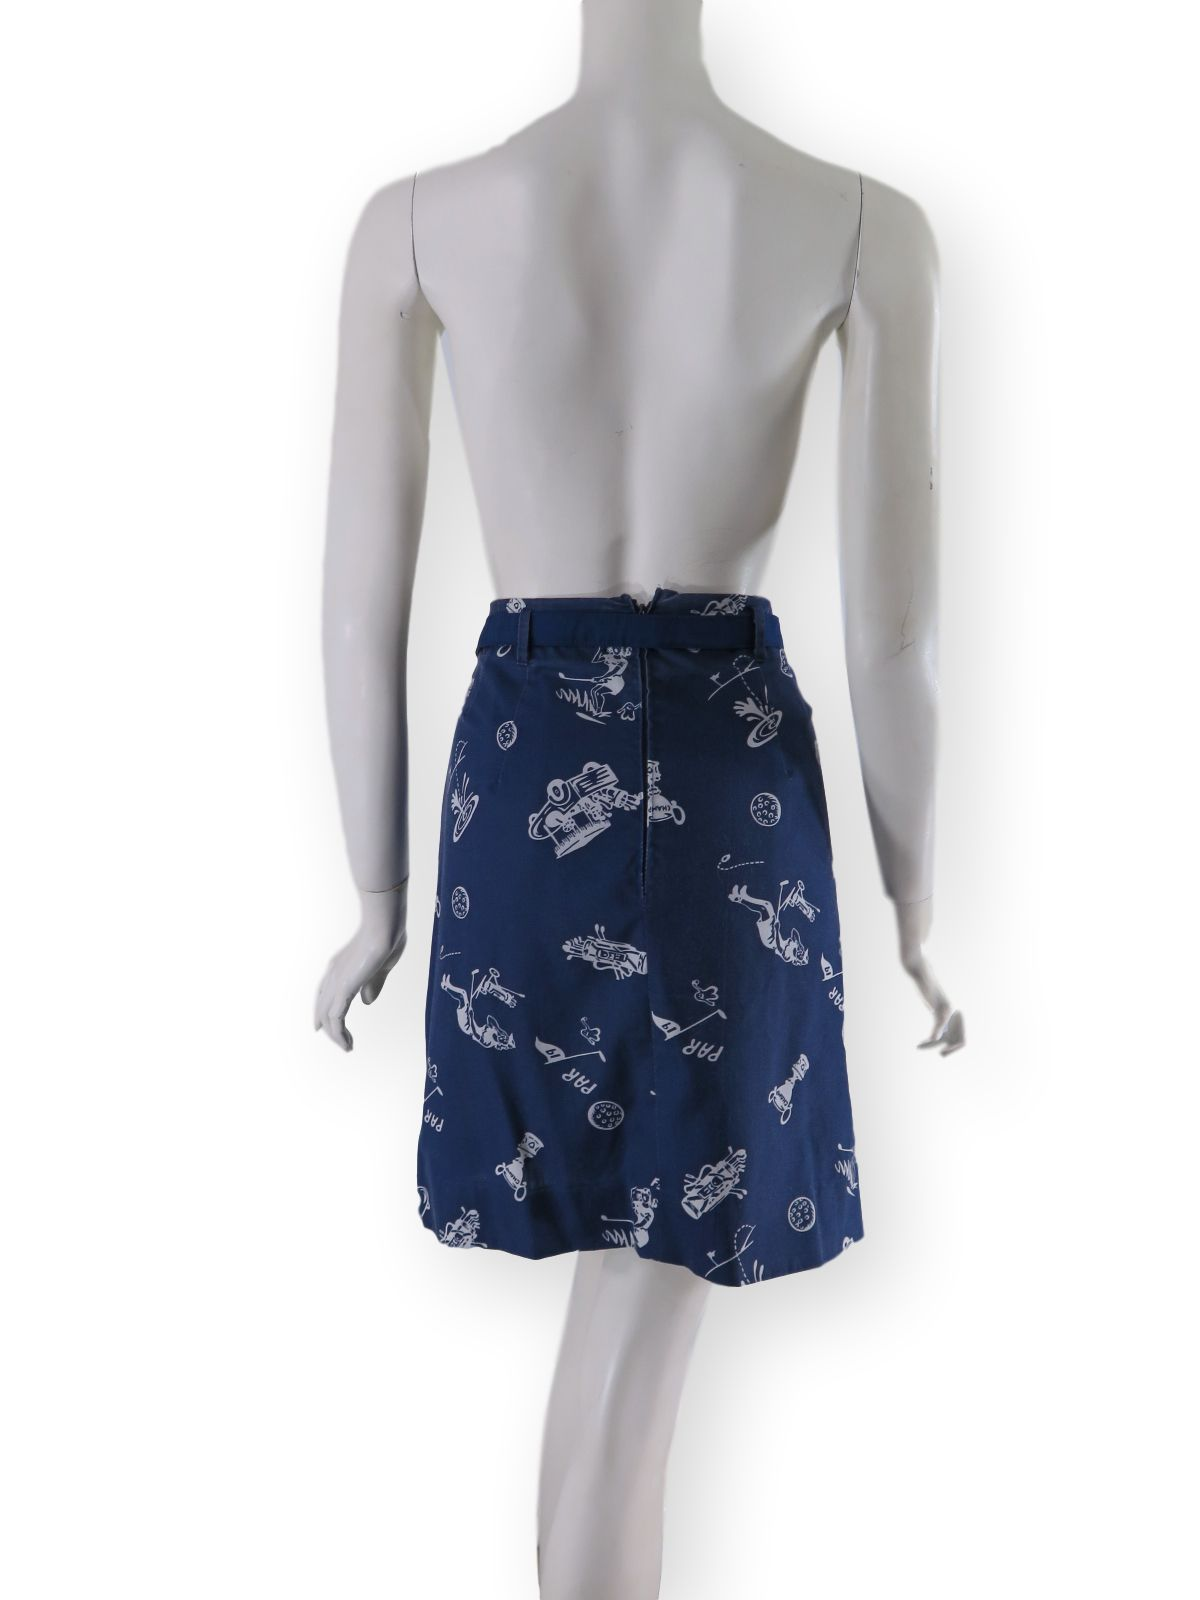 2ece4f8b Vintage Whimsicals Golf Skirt with Attached Shorts shorts revealed 60s/70s  Golf Skirt back view ...